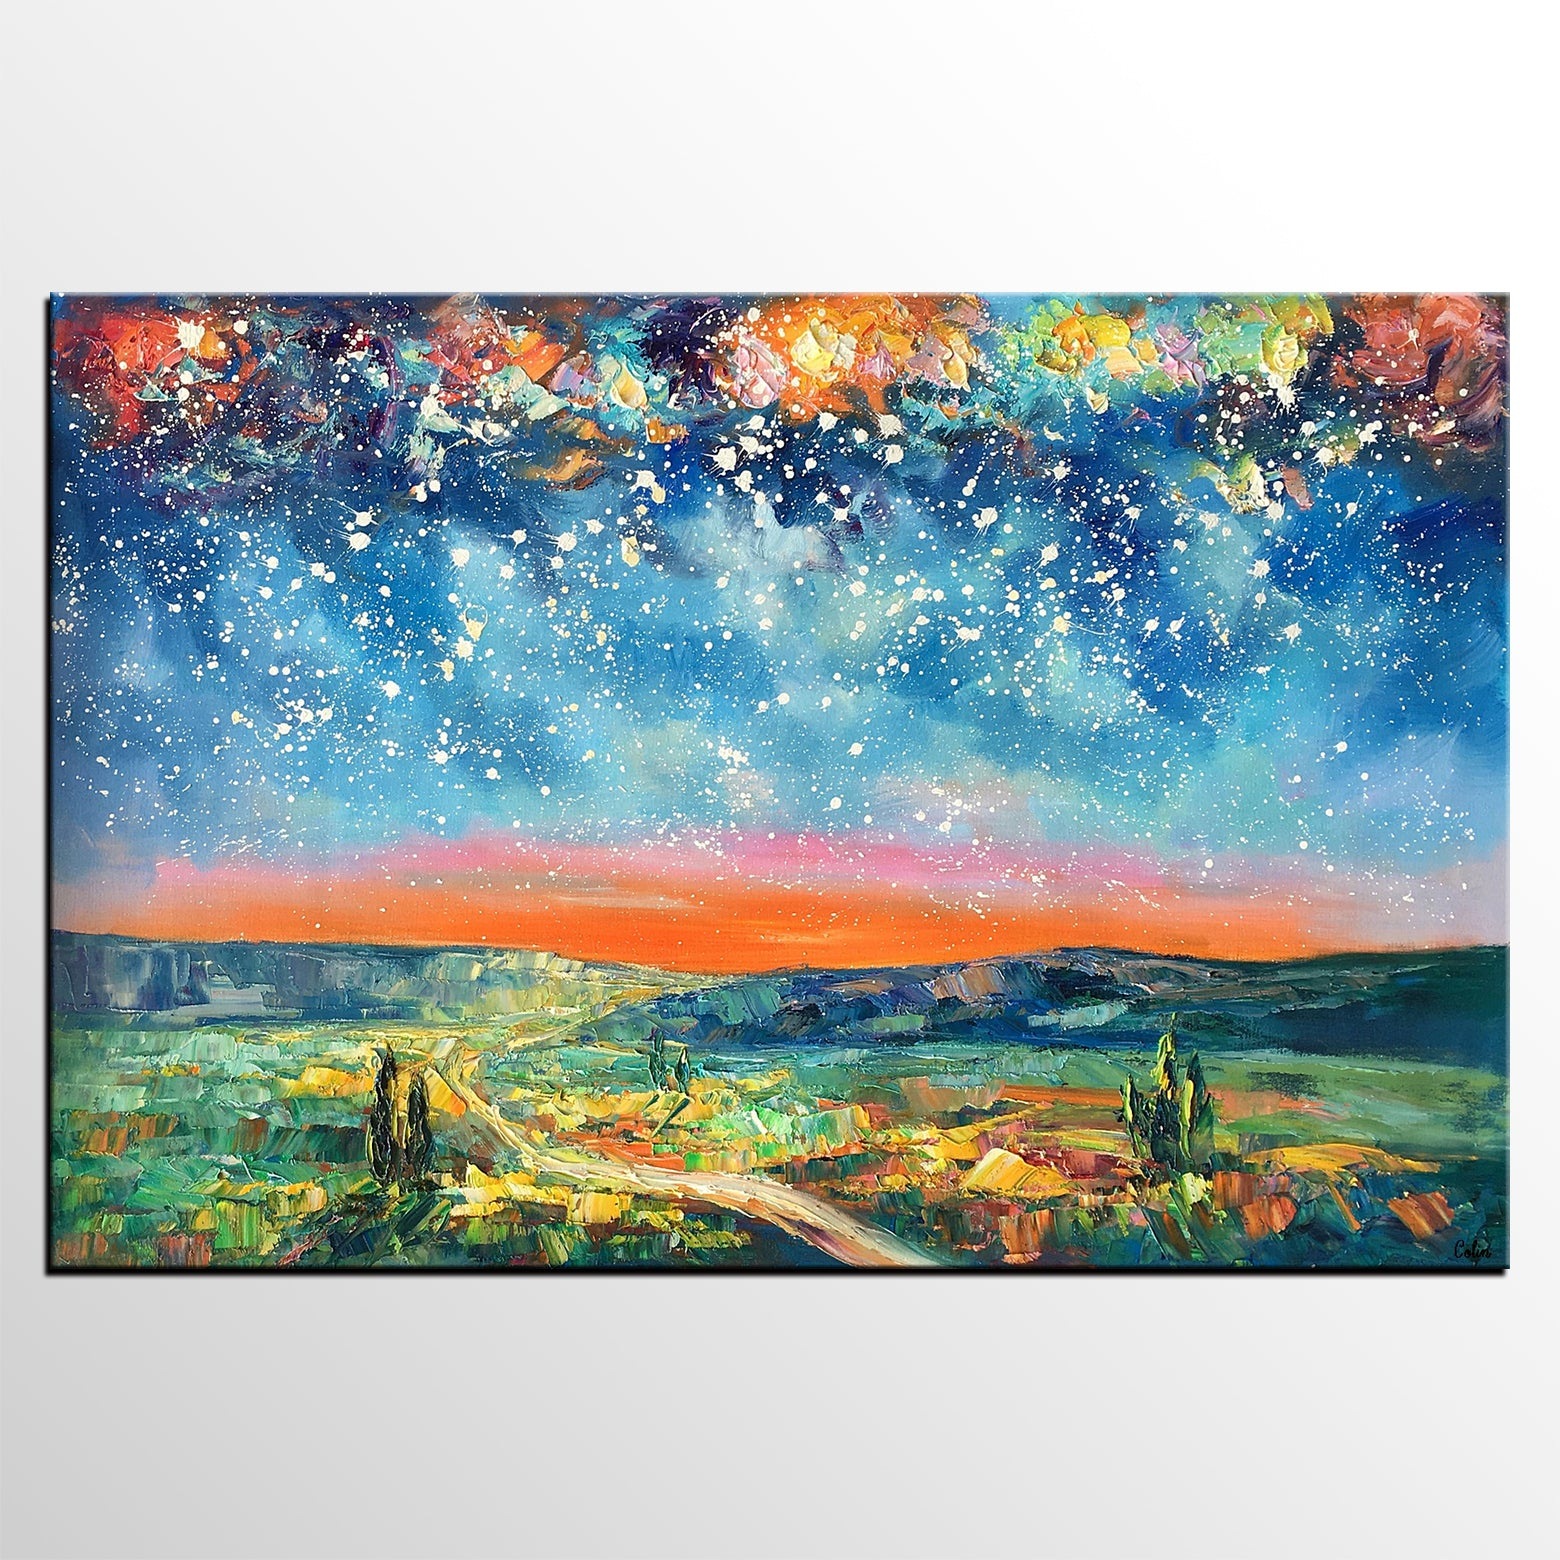 Abstract Art Painting, Abstract Landscape Painting, Starry Night Sky Art, Contemporary Art, Canvas Painting, Oil Painting - artworkcanvas